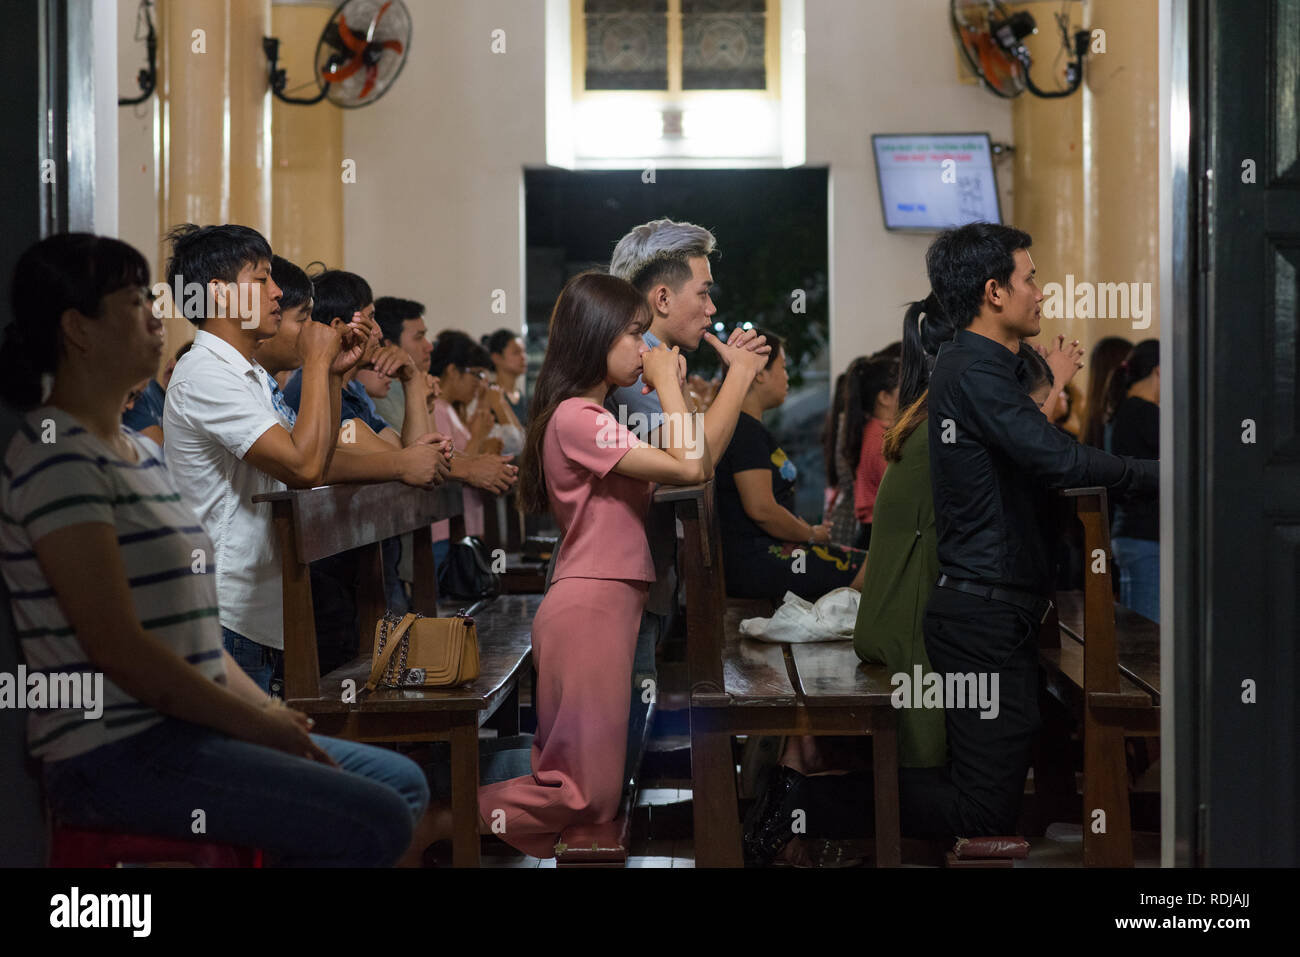 Danang, Vietnam - October 21, 2018: people kneel on evening Sunday service in Catholic Danang Cathedral (Basilica of the Sacred Heart of Jesus). - Stock Image